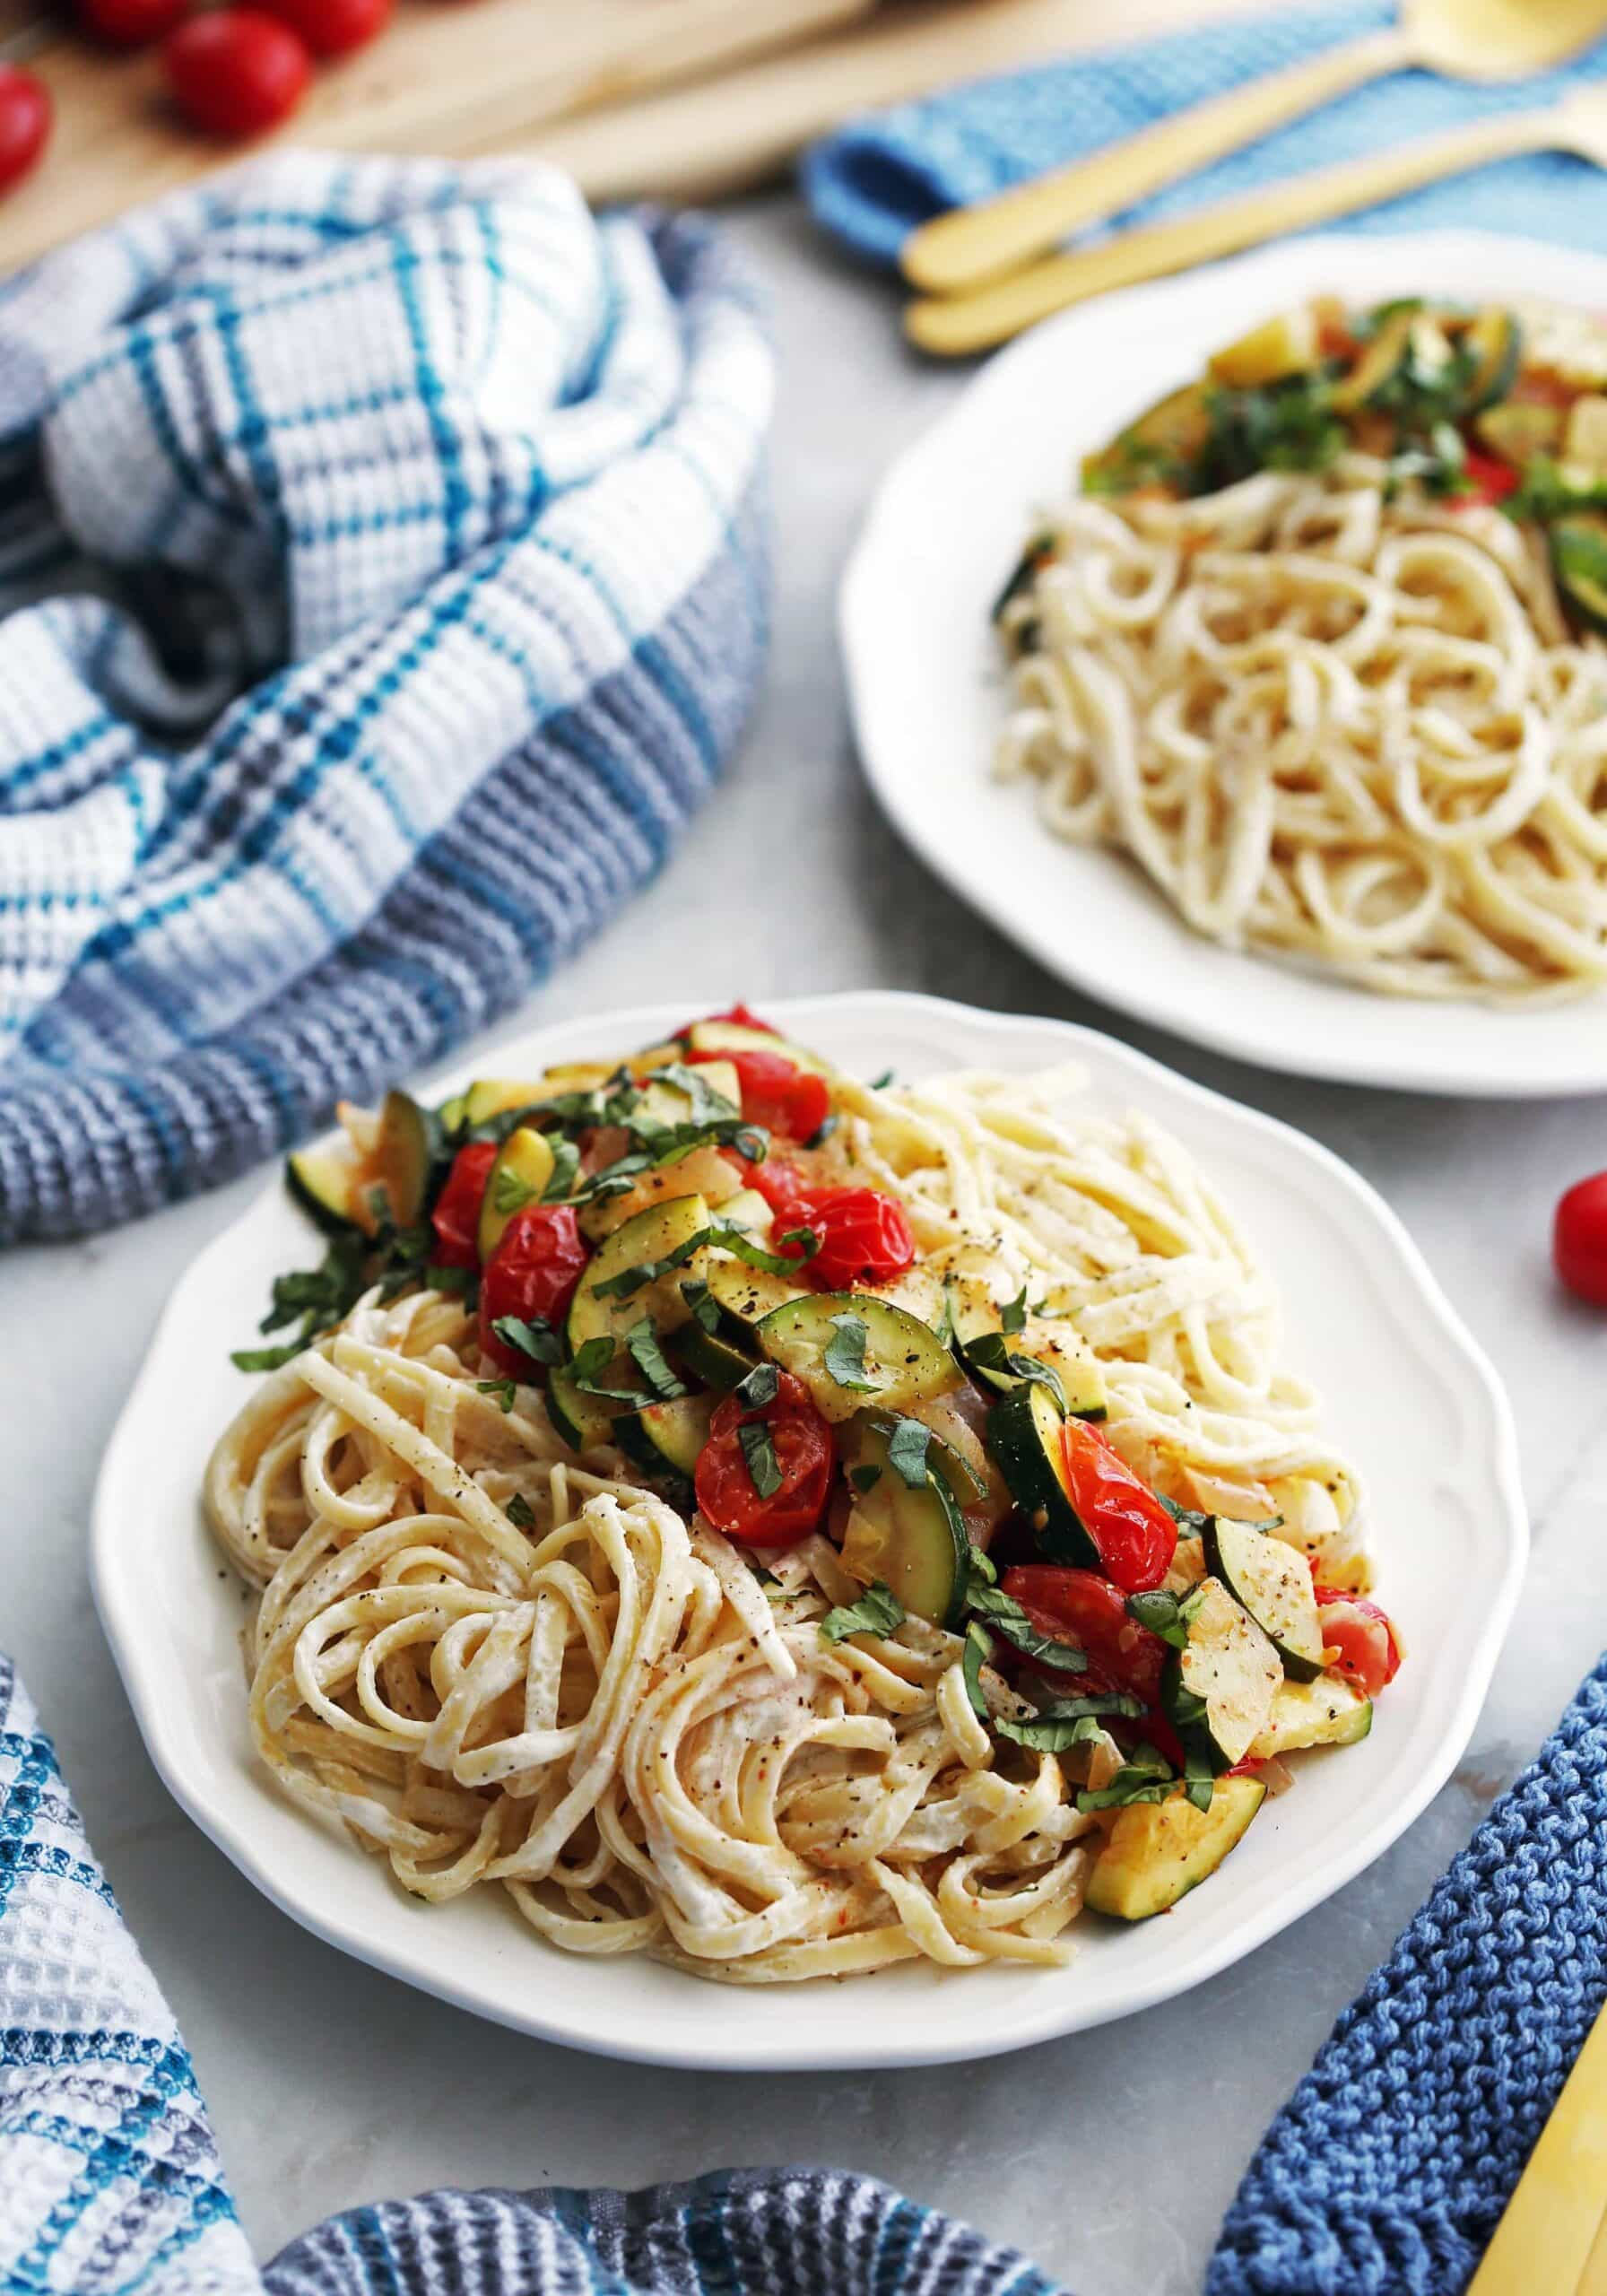 Creamy Goat Cheese Pasta with Zucchini and Tomatoes